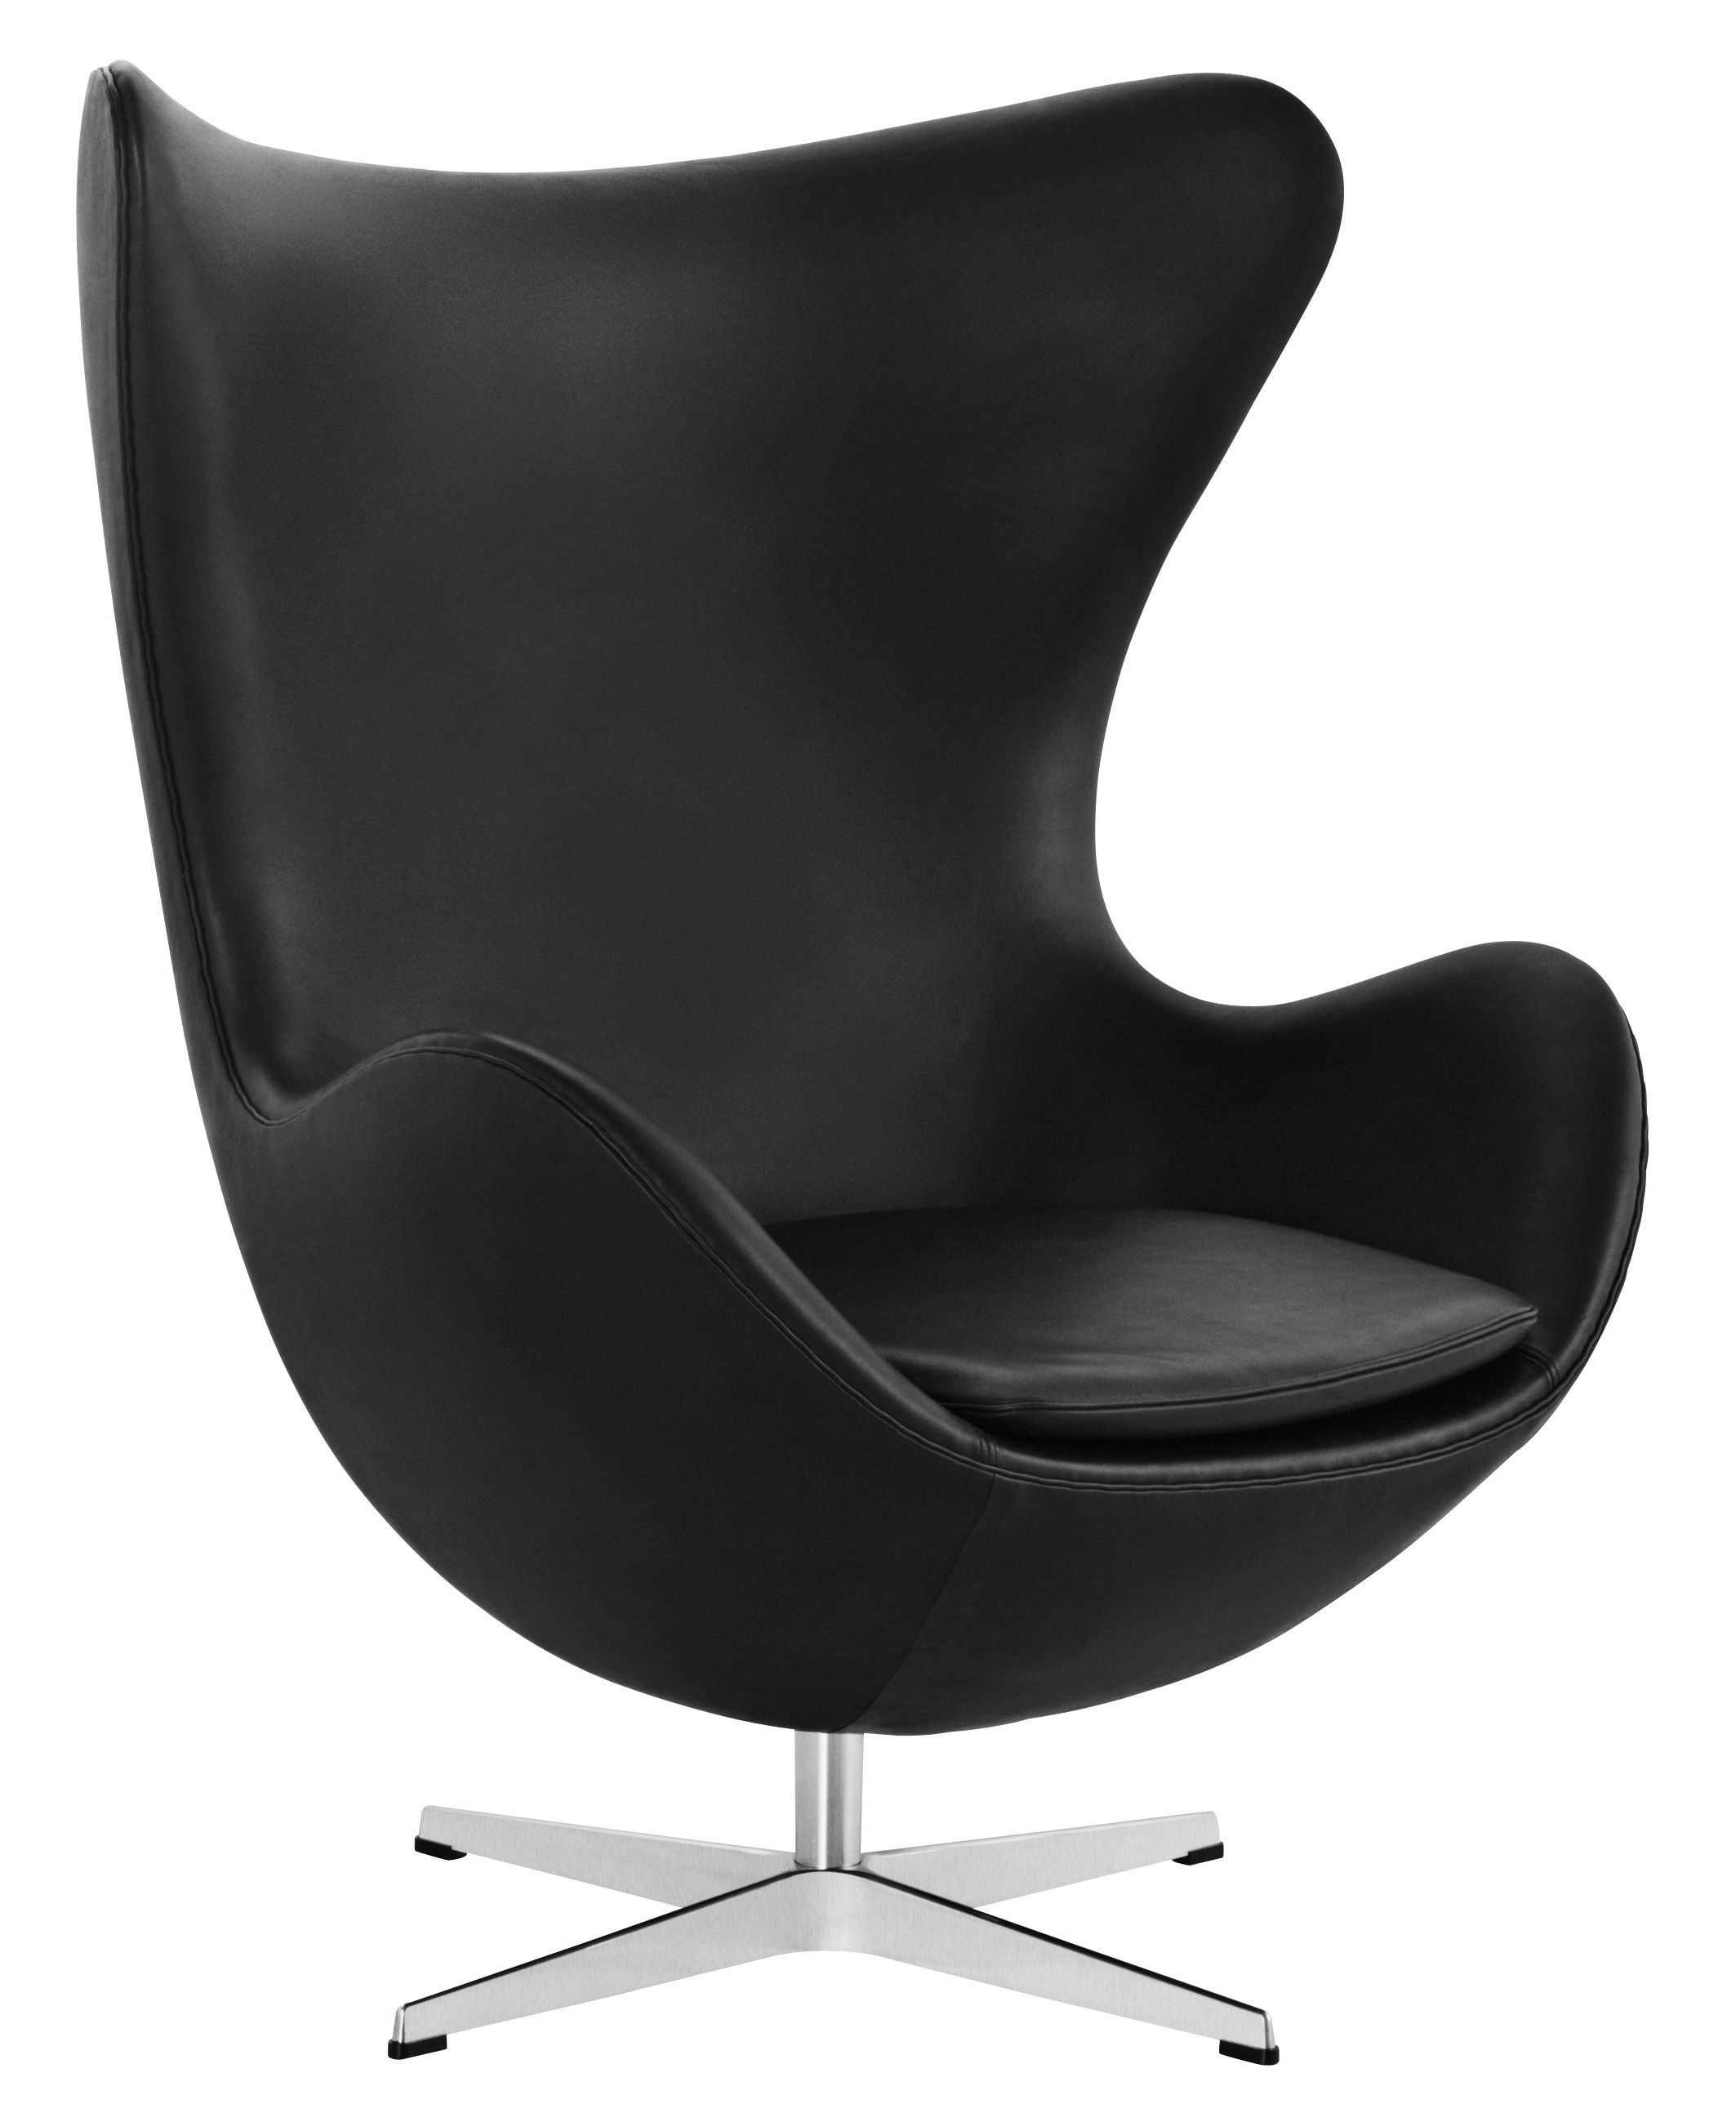 egg chair swivel armchair leather black leather by. Black Bedroom Furniture Sets. Home Design Ideas